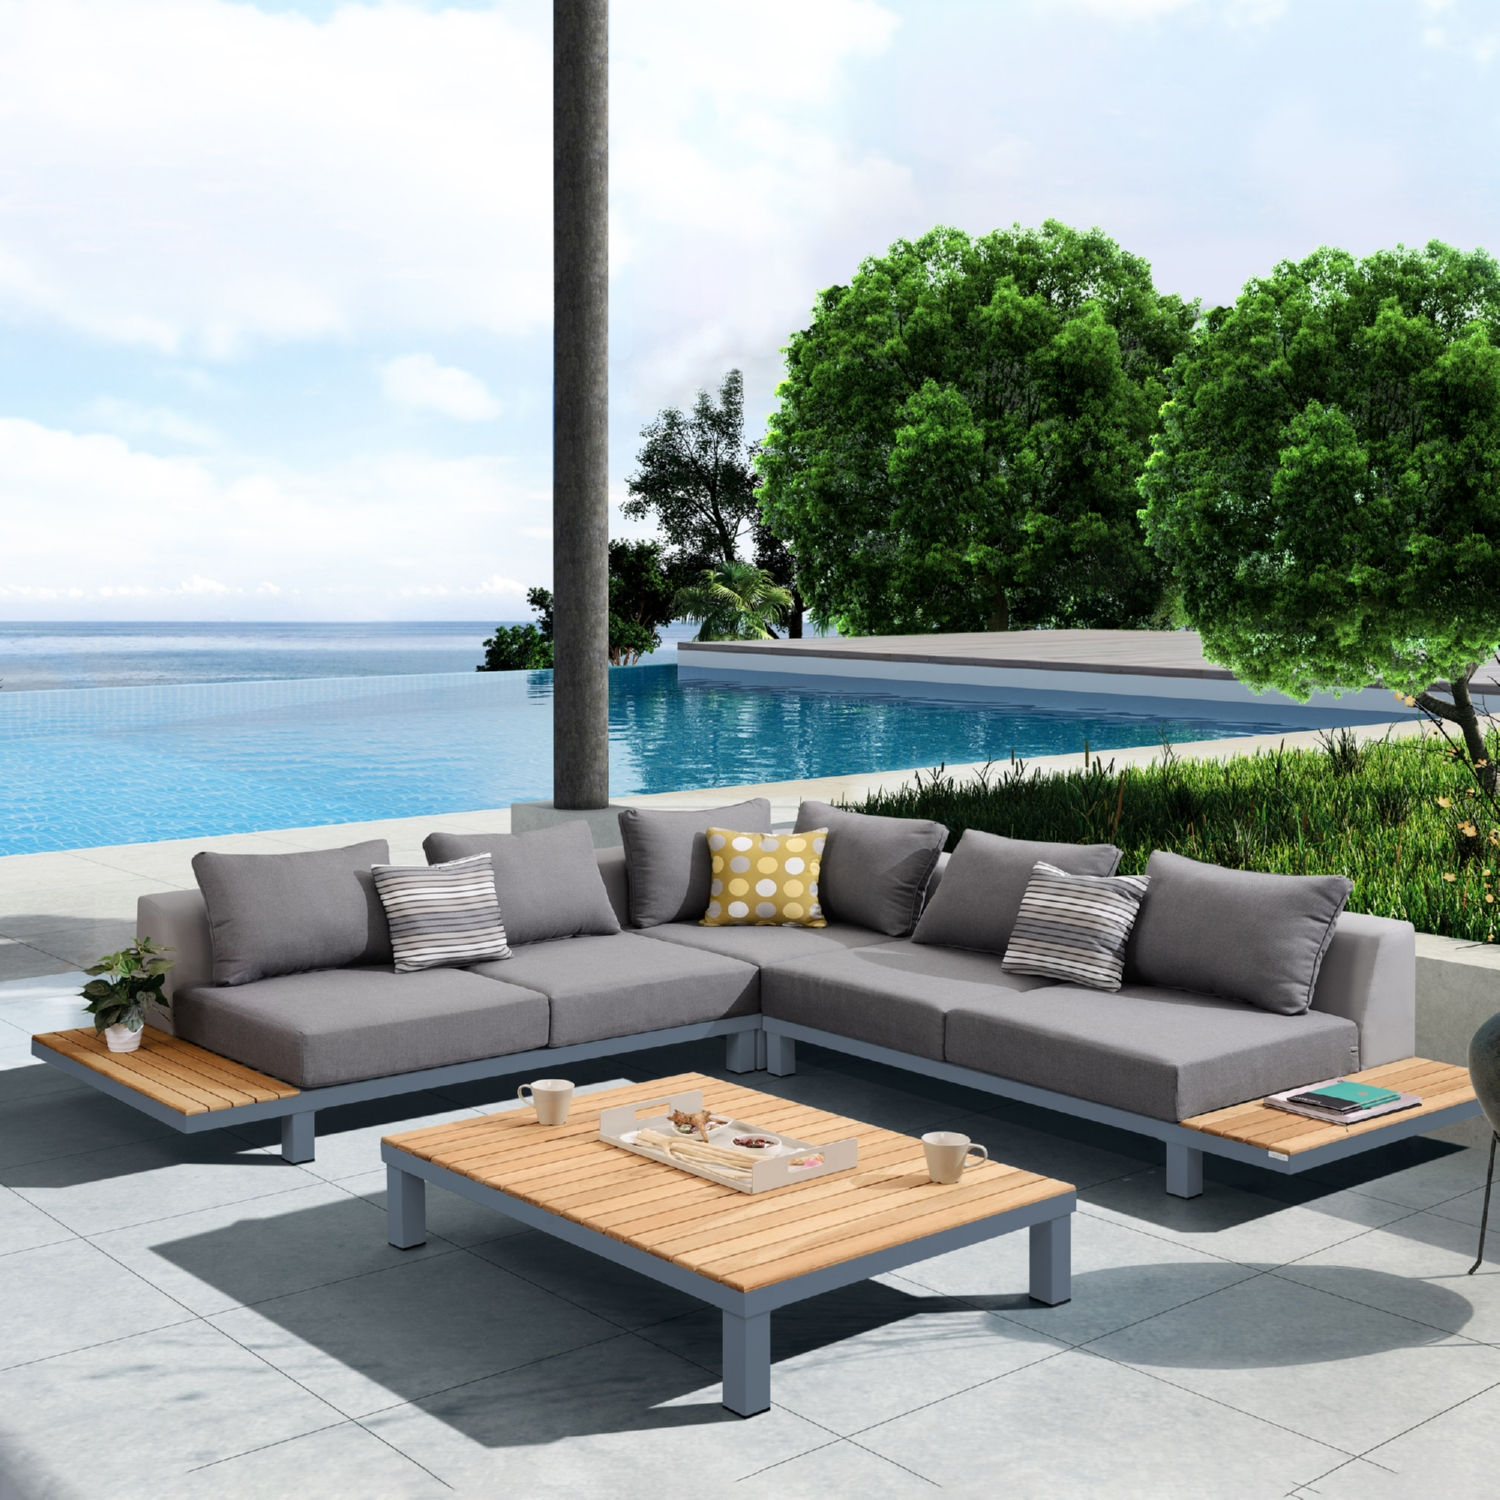 Picture of: Armen Setodpo4se Polo 4 Piece Outdoor Sectional Sofa Set W Dark Grey Cushions Accent Pillows